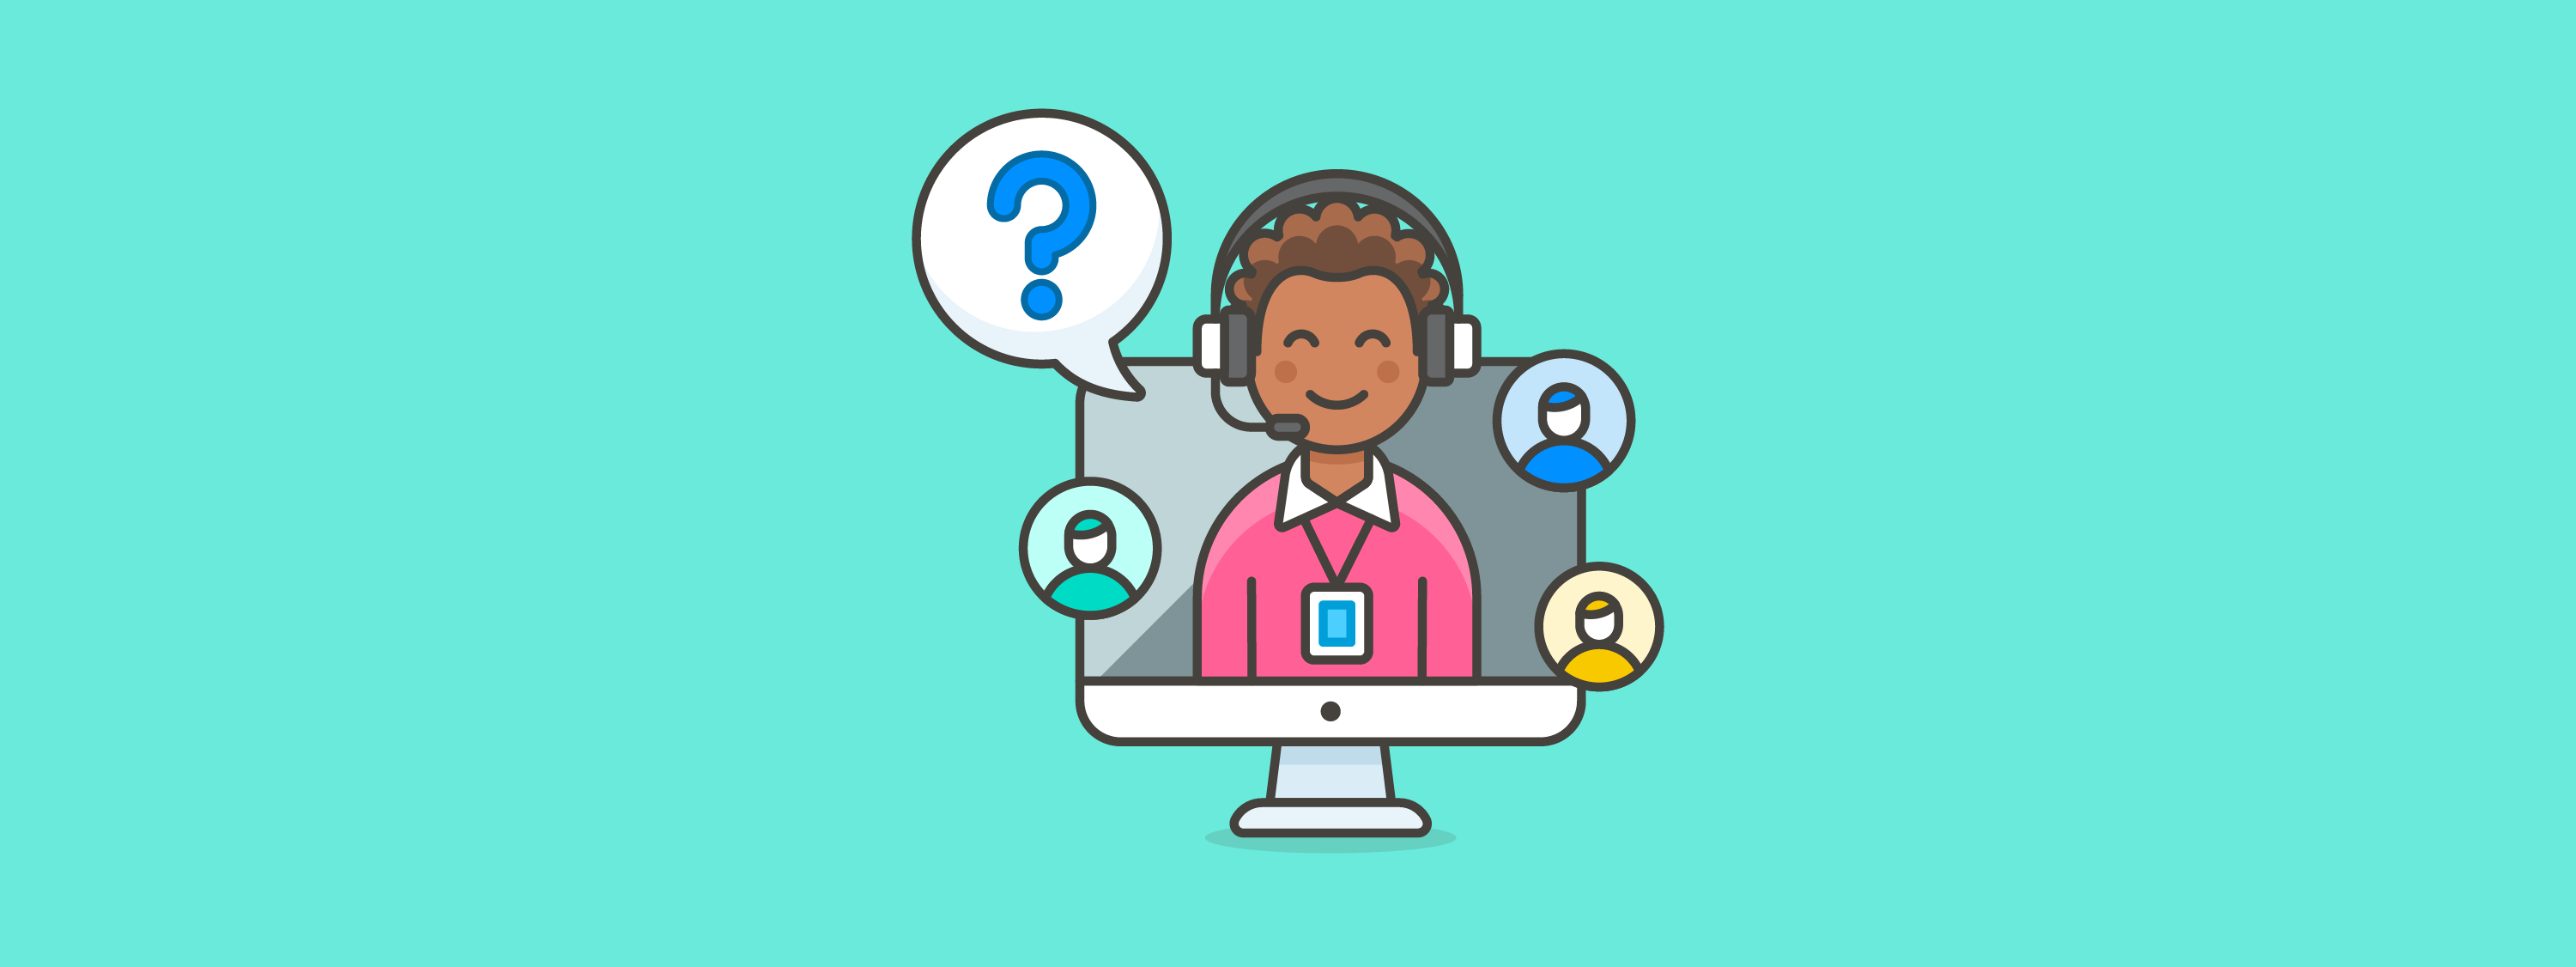 Four factors that will affect remote support in 2021